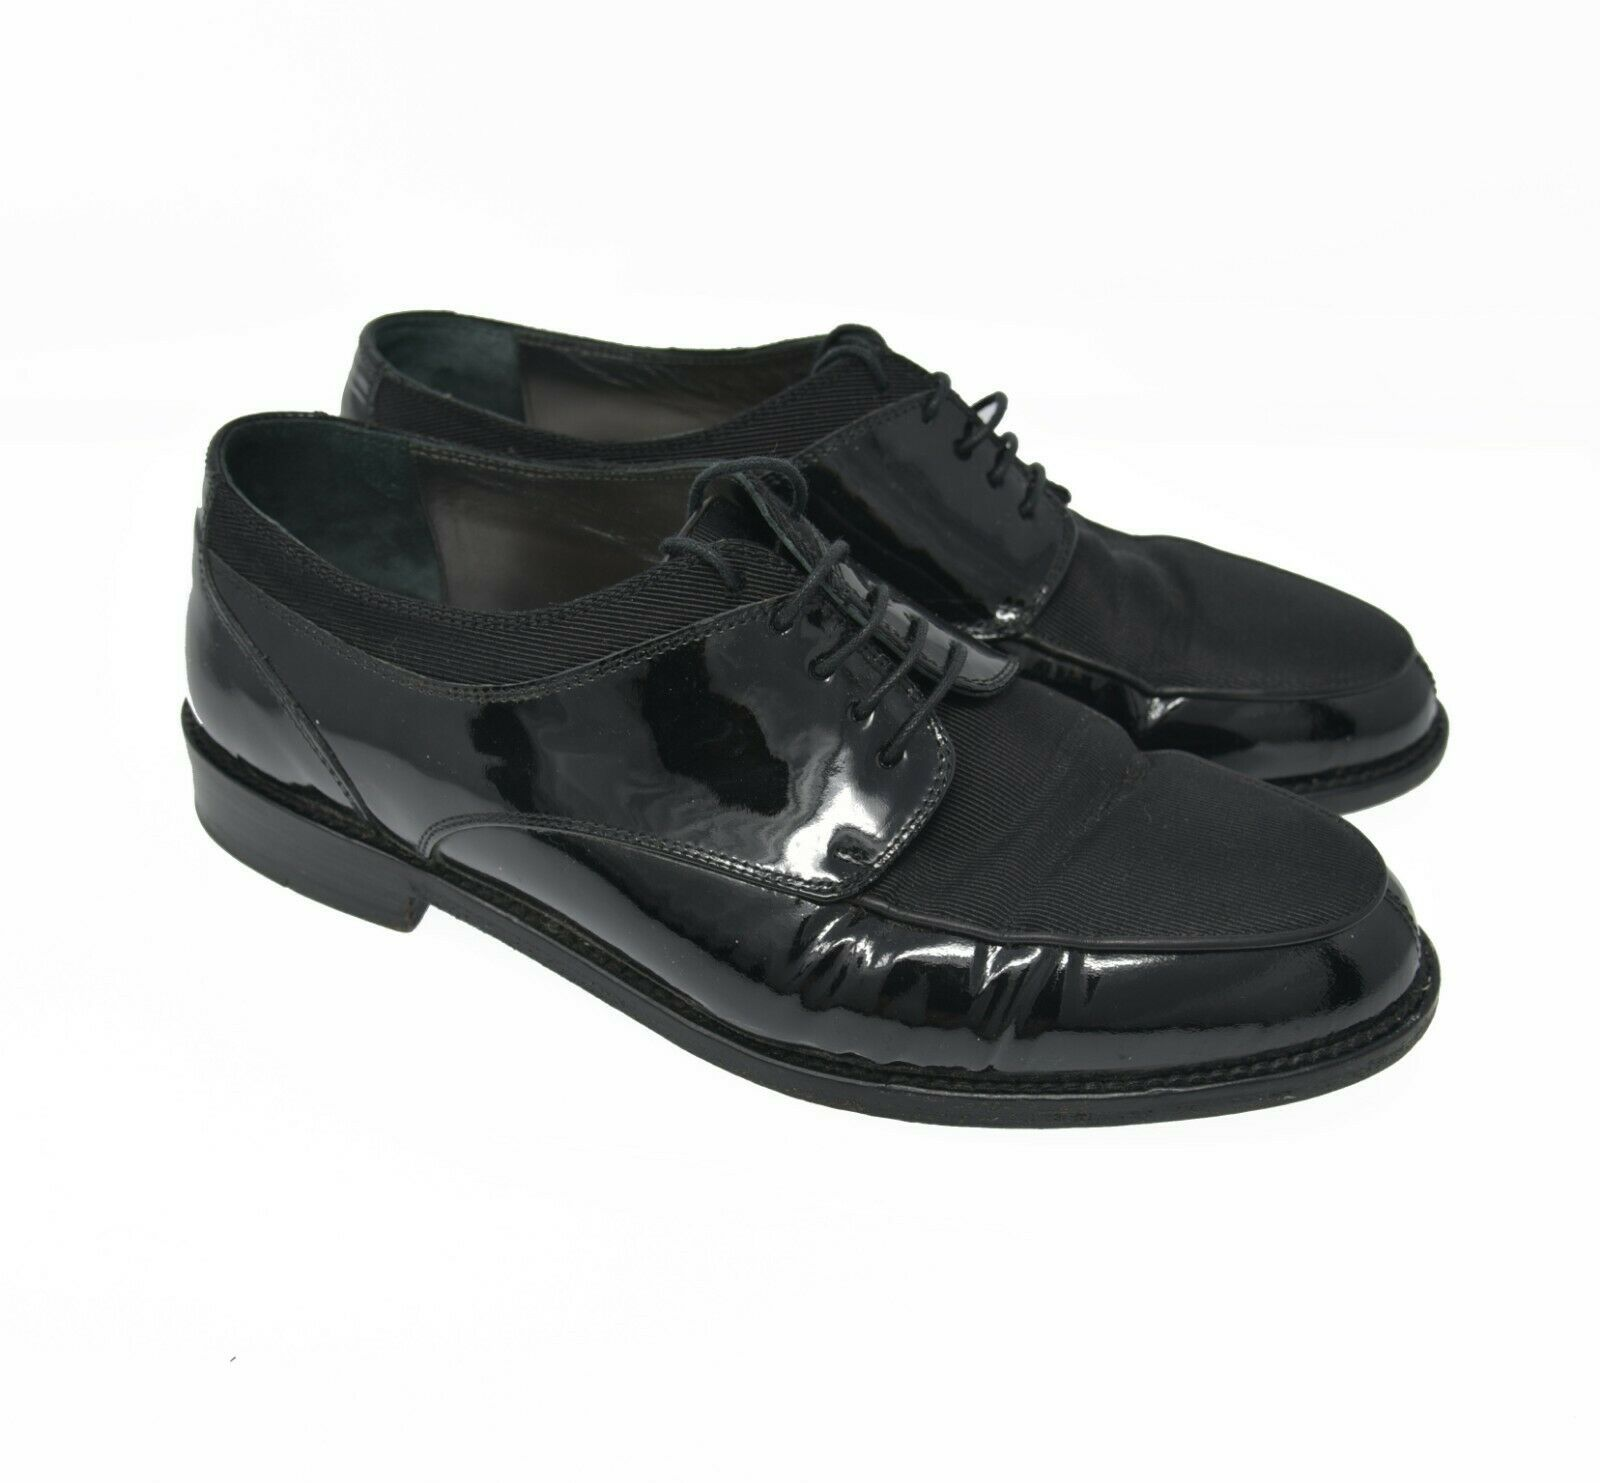 Cole Haan Evening Women's Sz 7.5D Black Leather Fabric Lace Up Oxford Dress Shoe